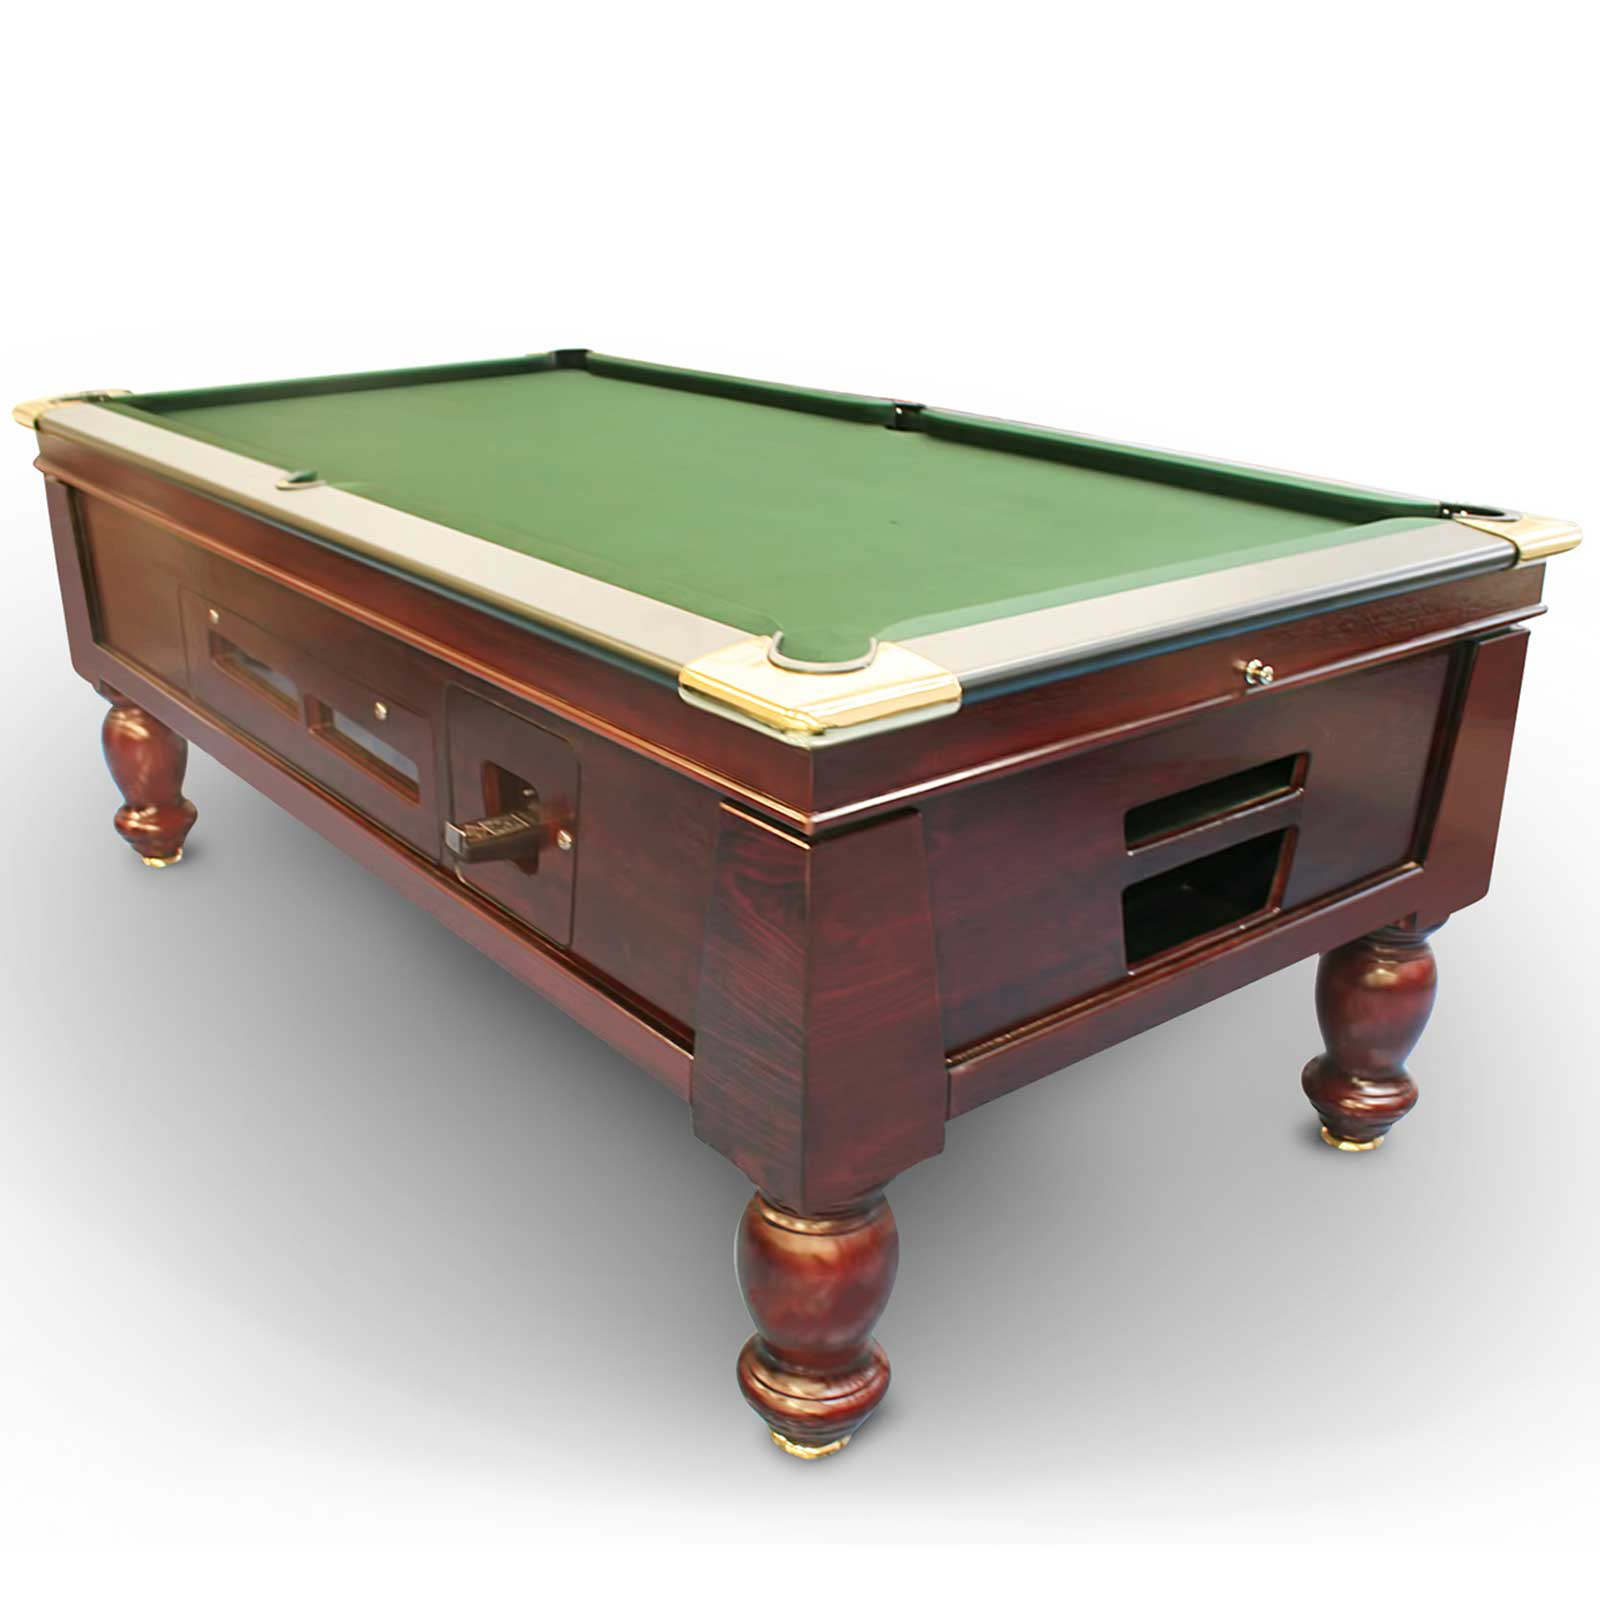 7 FT Slate Modern Pub/Hotel Bar Coin Operated Billiard Table with Traditional Turned Leg